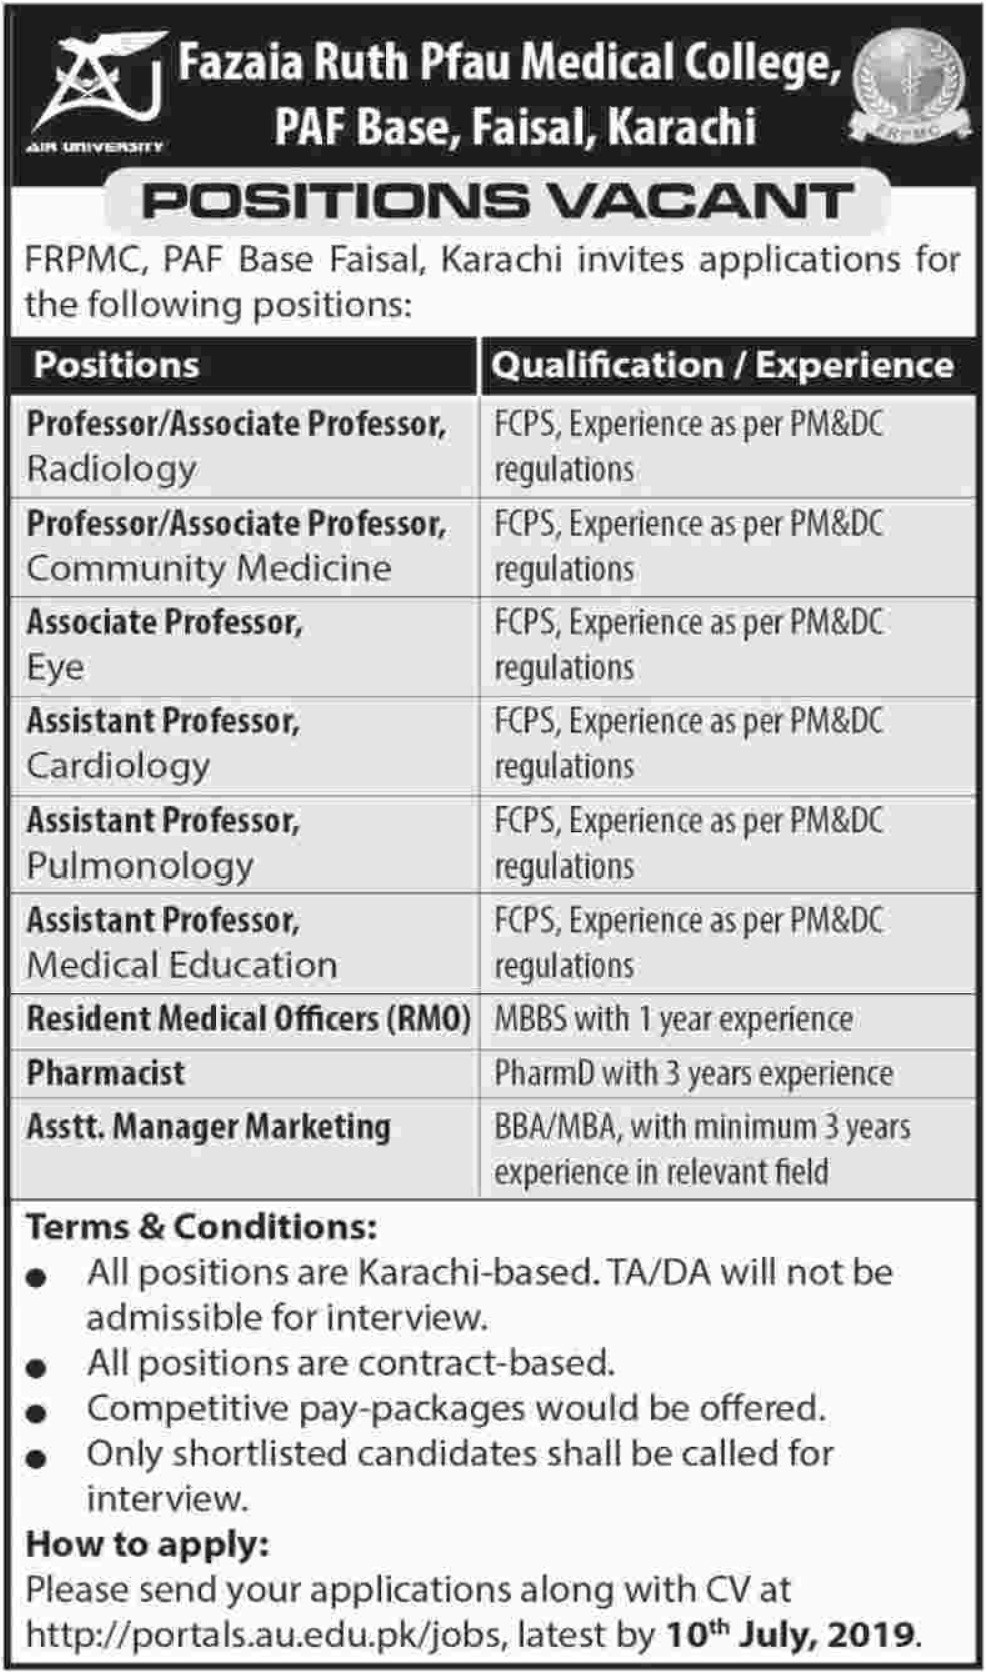 Fazaia Ruth Pfau Medical College Karachi Jobs 2019